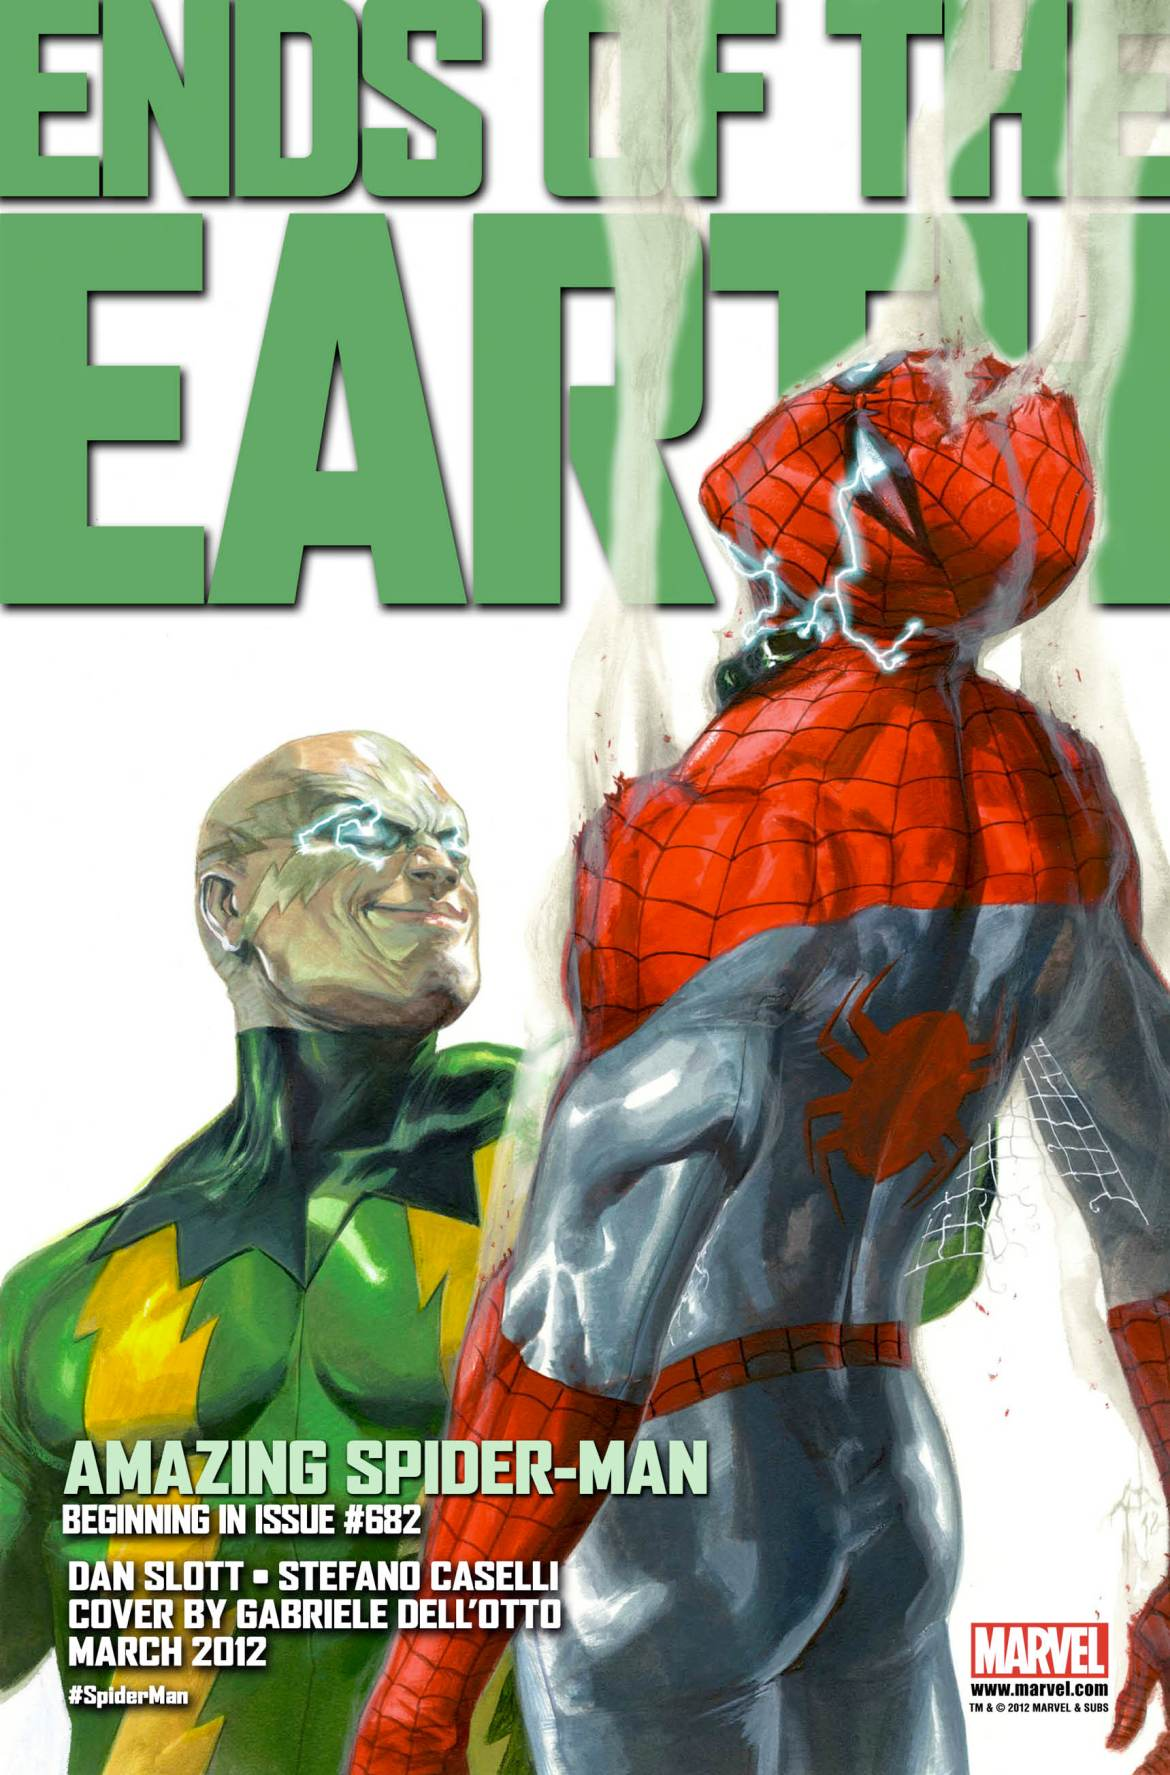 AmazingSpiderMan_EndsOfTheEarth_Teaser2 Mysterio takes Spider-Man to THE ENDS OF THE EARTH